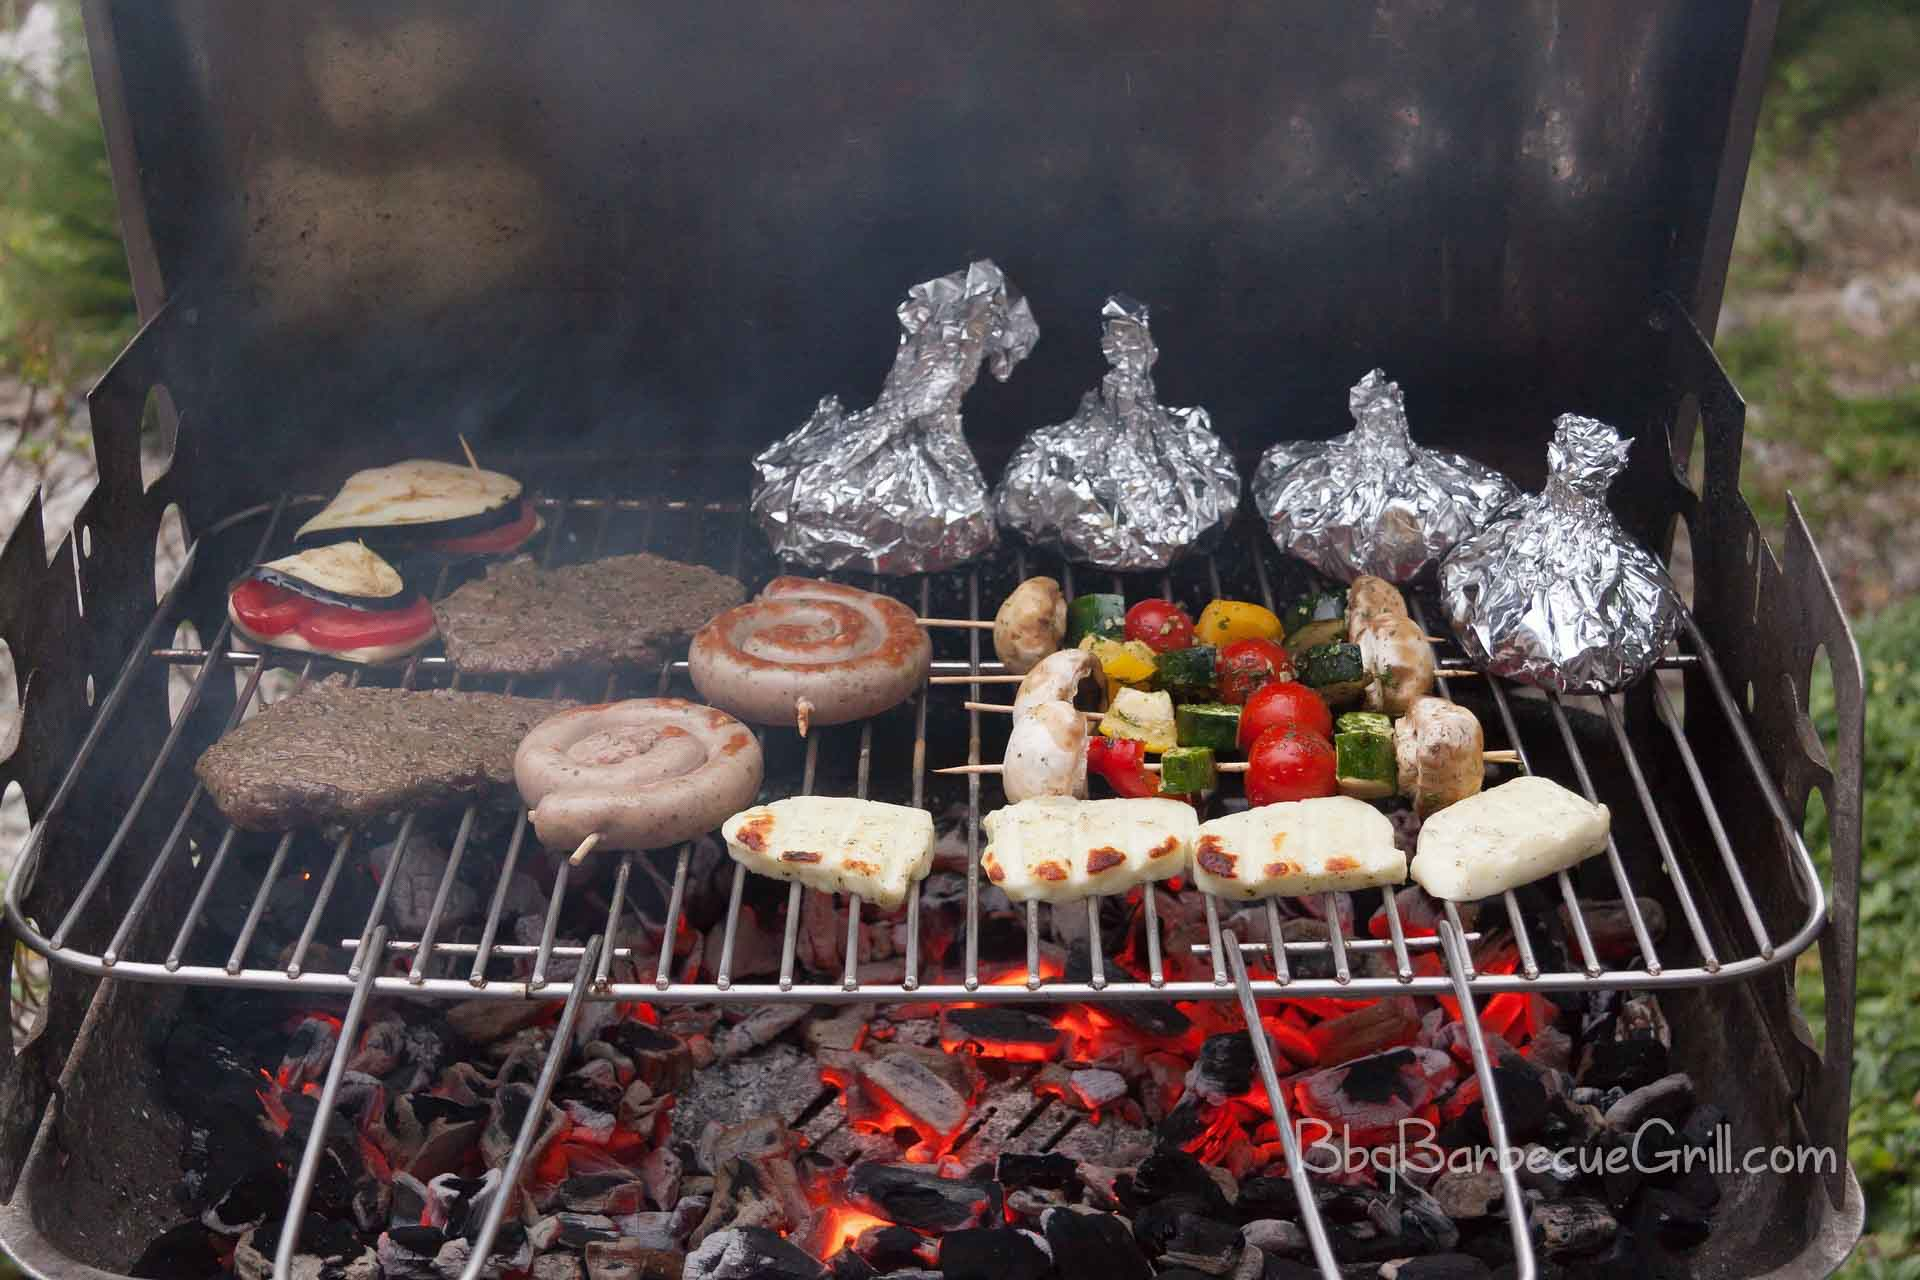 Barbecue grill: types, sizes, choices and rules of care 12